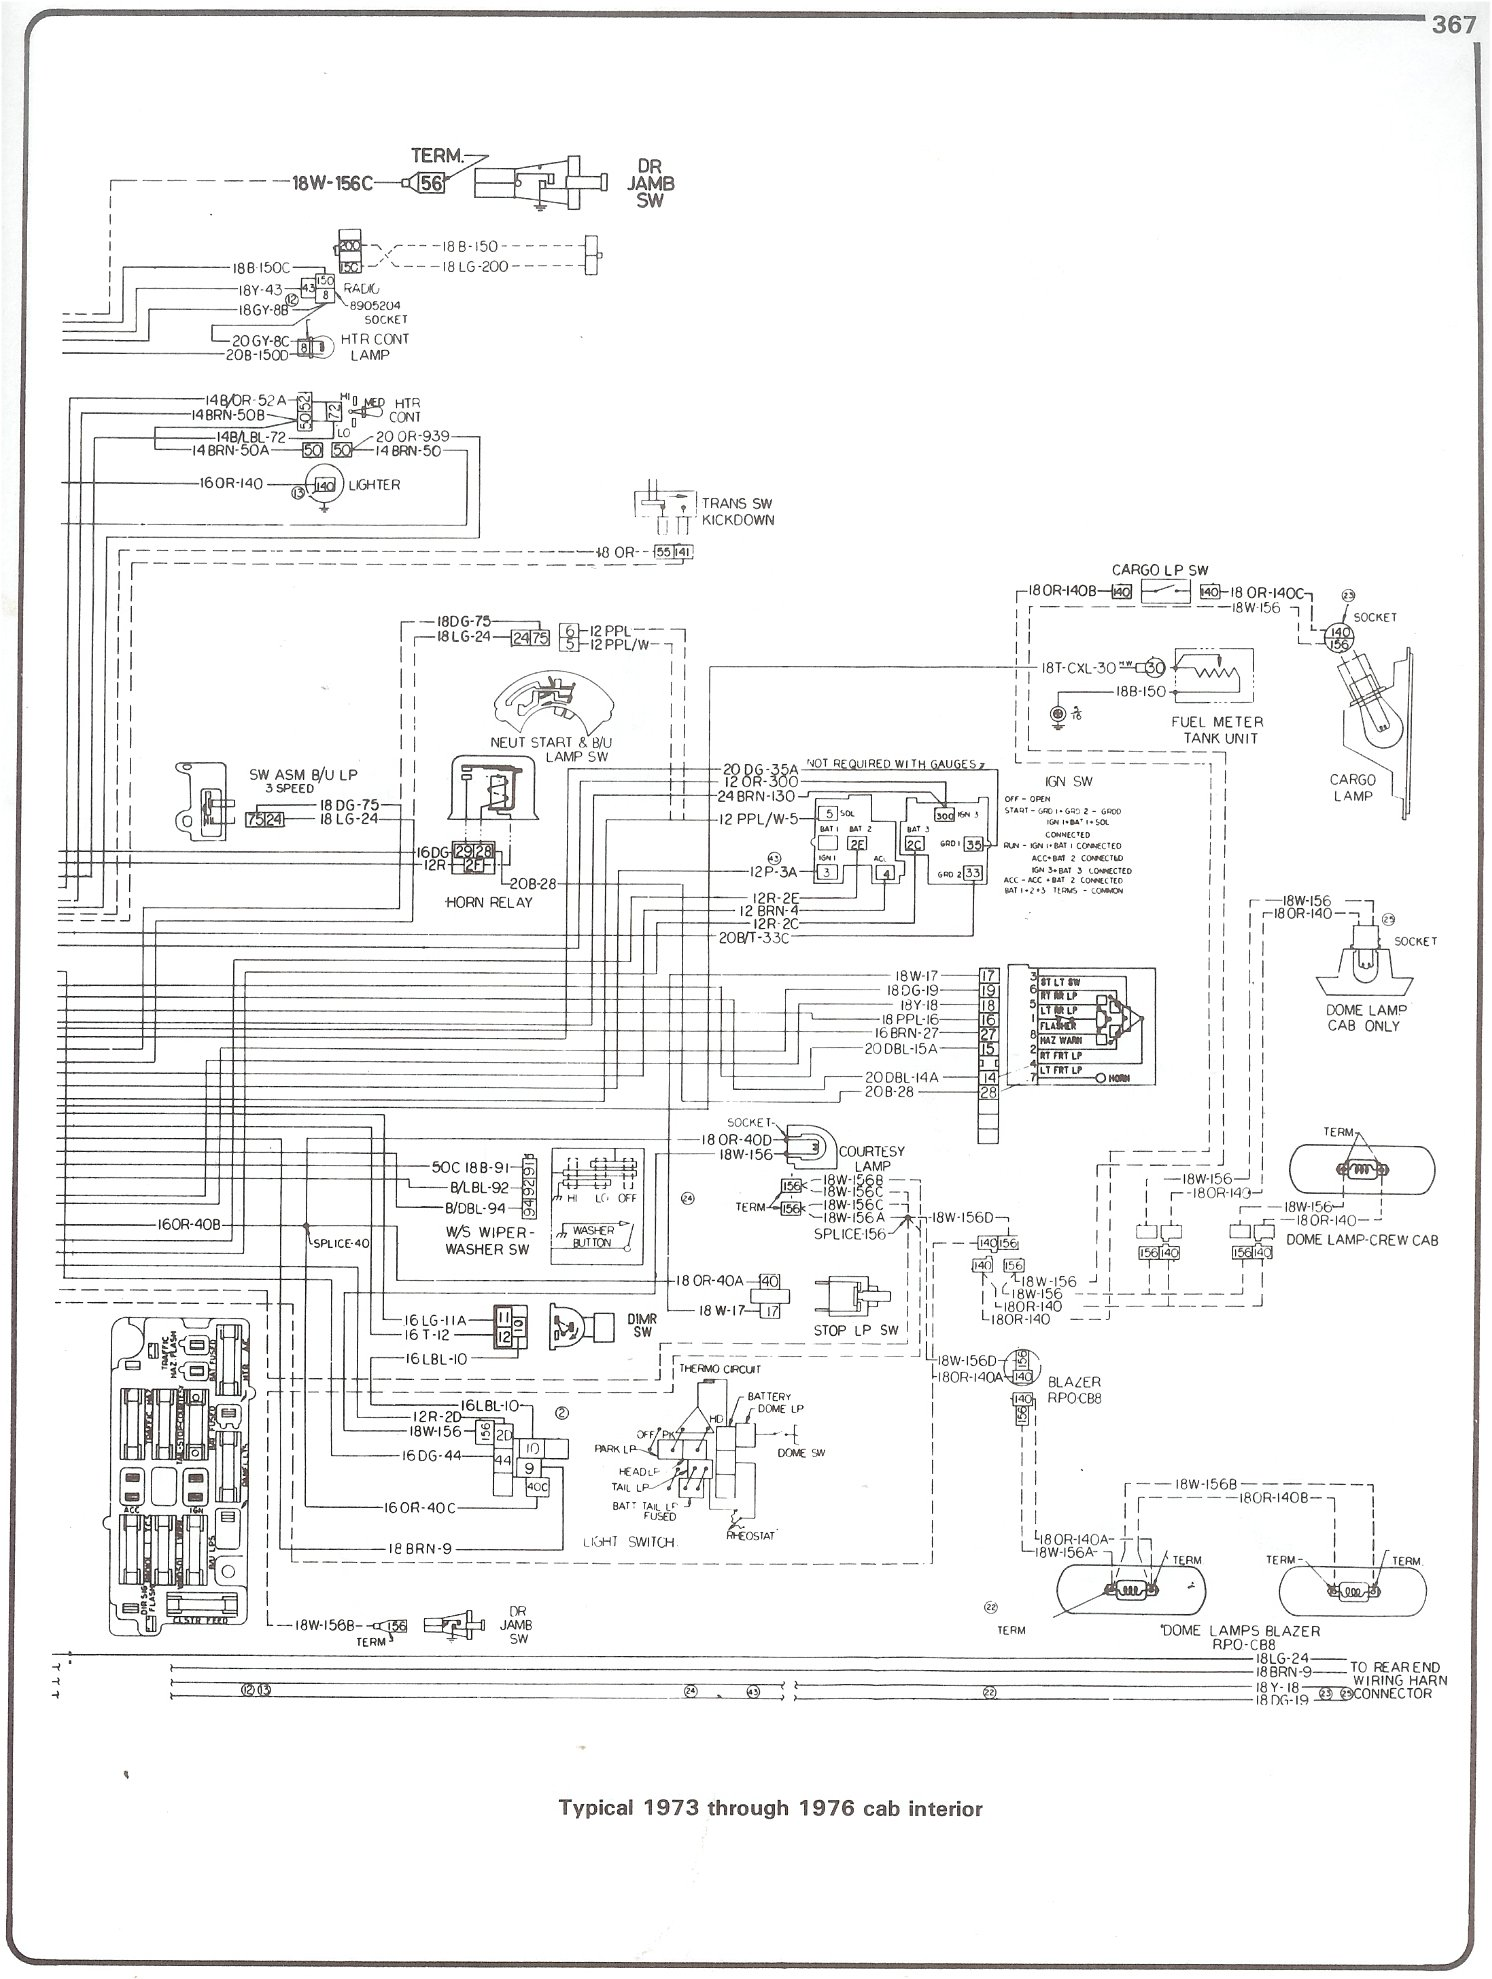 73 76_cab_inter 1976 chevy truck wiring diagram 1976 gmc wiring diagram \u2022 wiring 1981 K20 Step Side at panicattacktreatment.co